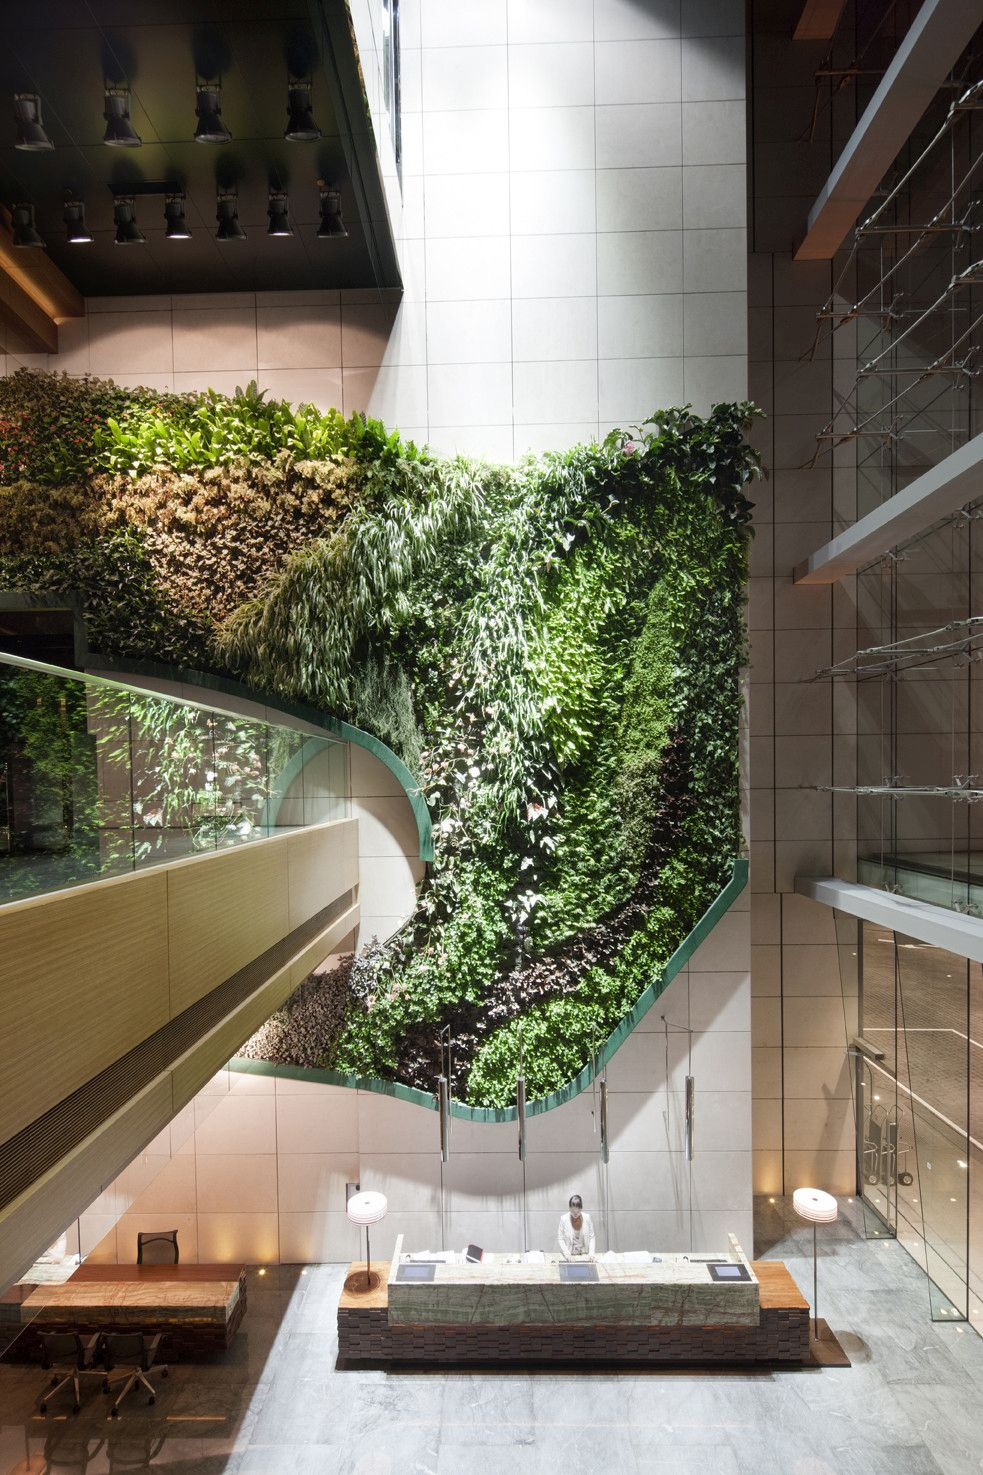 This swirling green wall by Rocco Design Architects is at the ICON teaching hotel of the PolyU in Hong Kong.